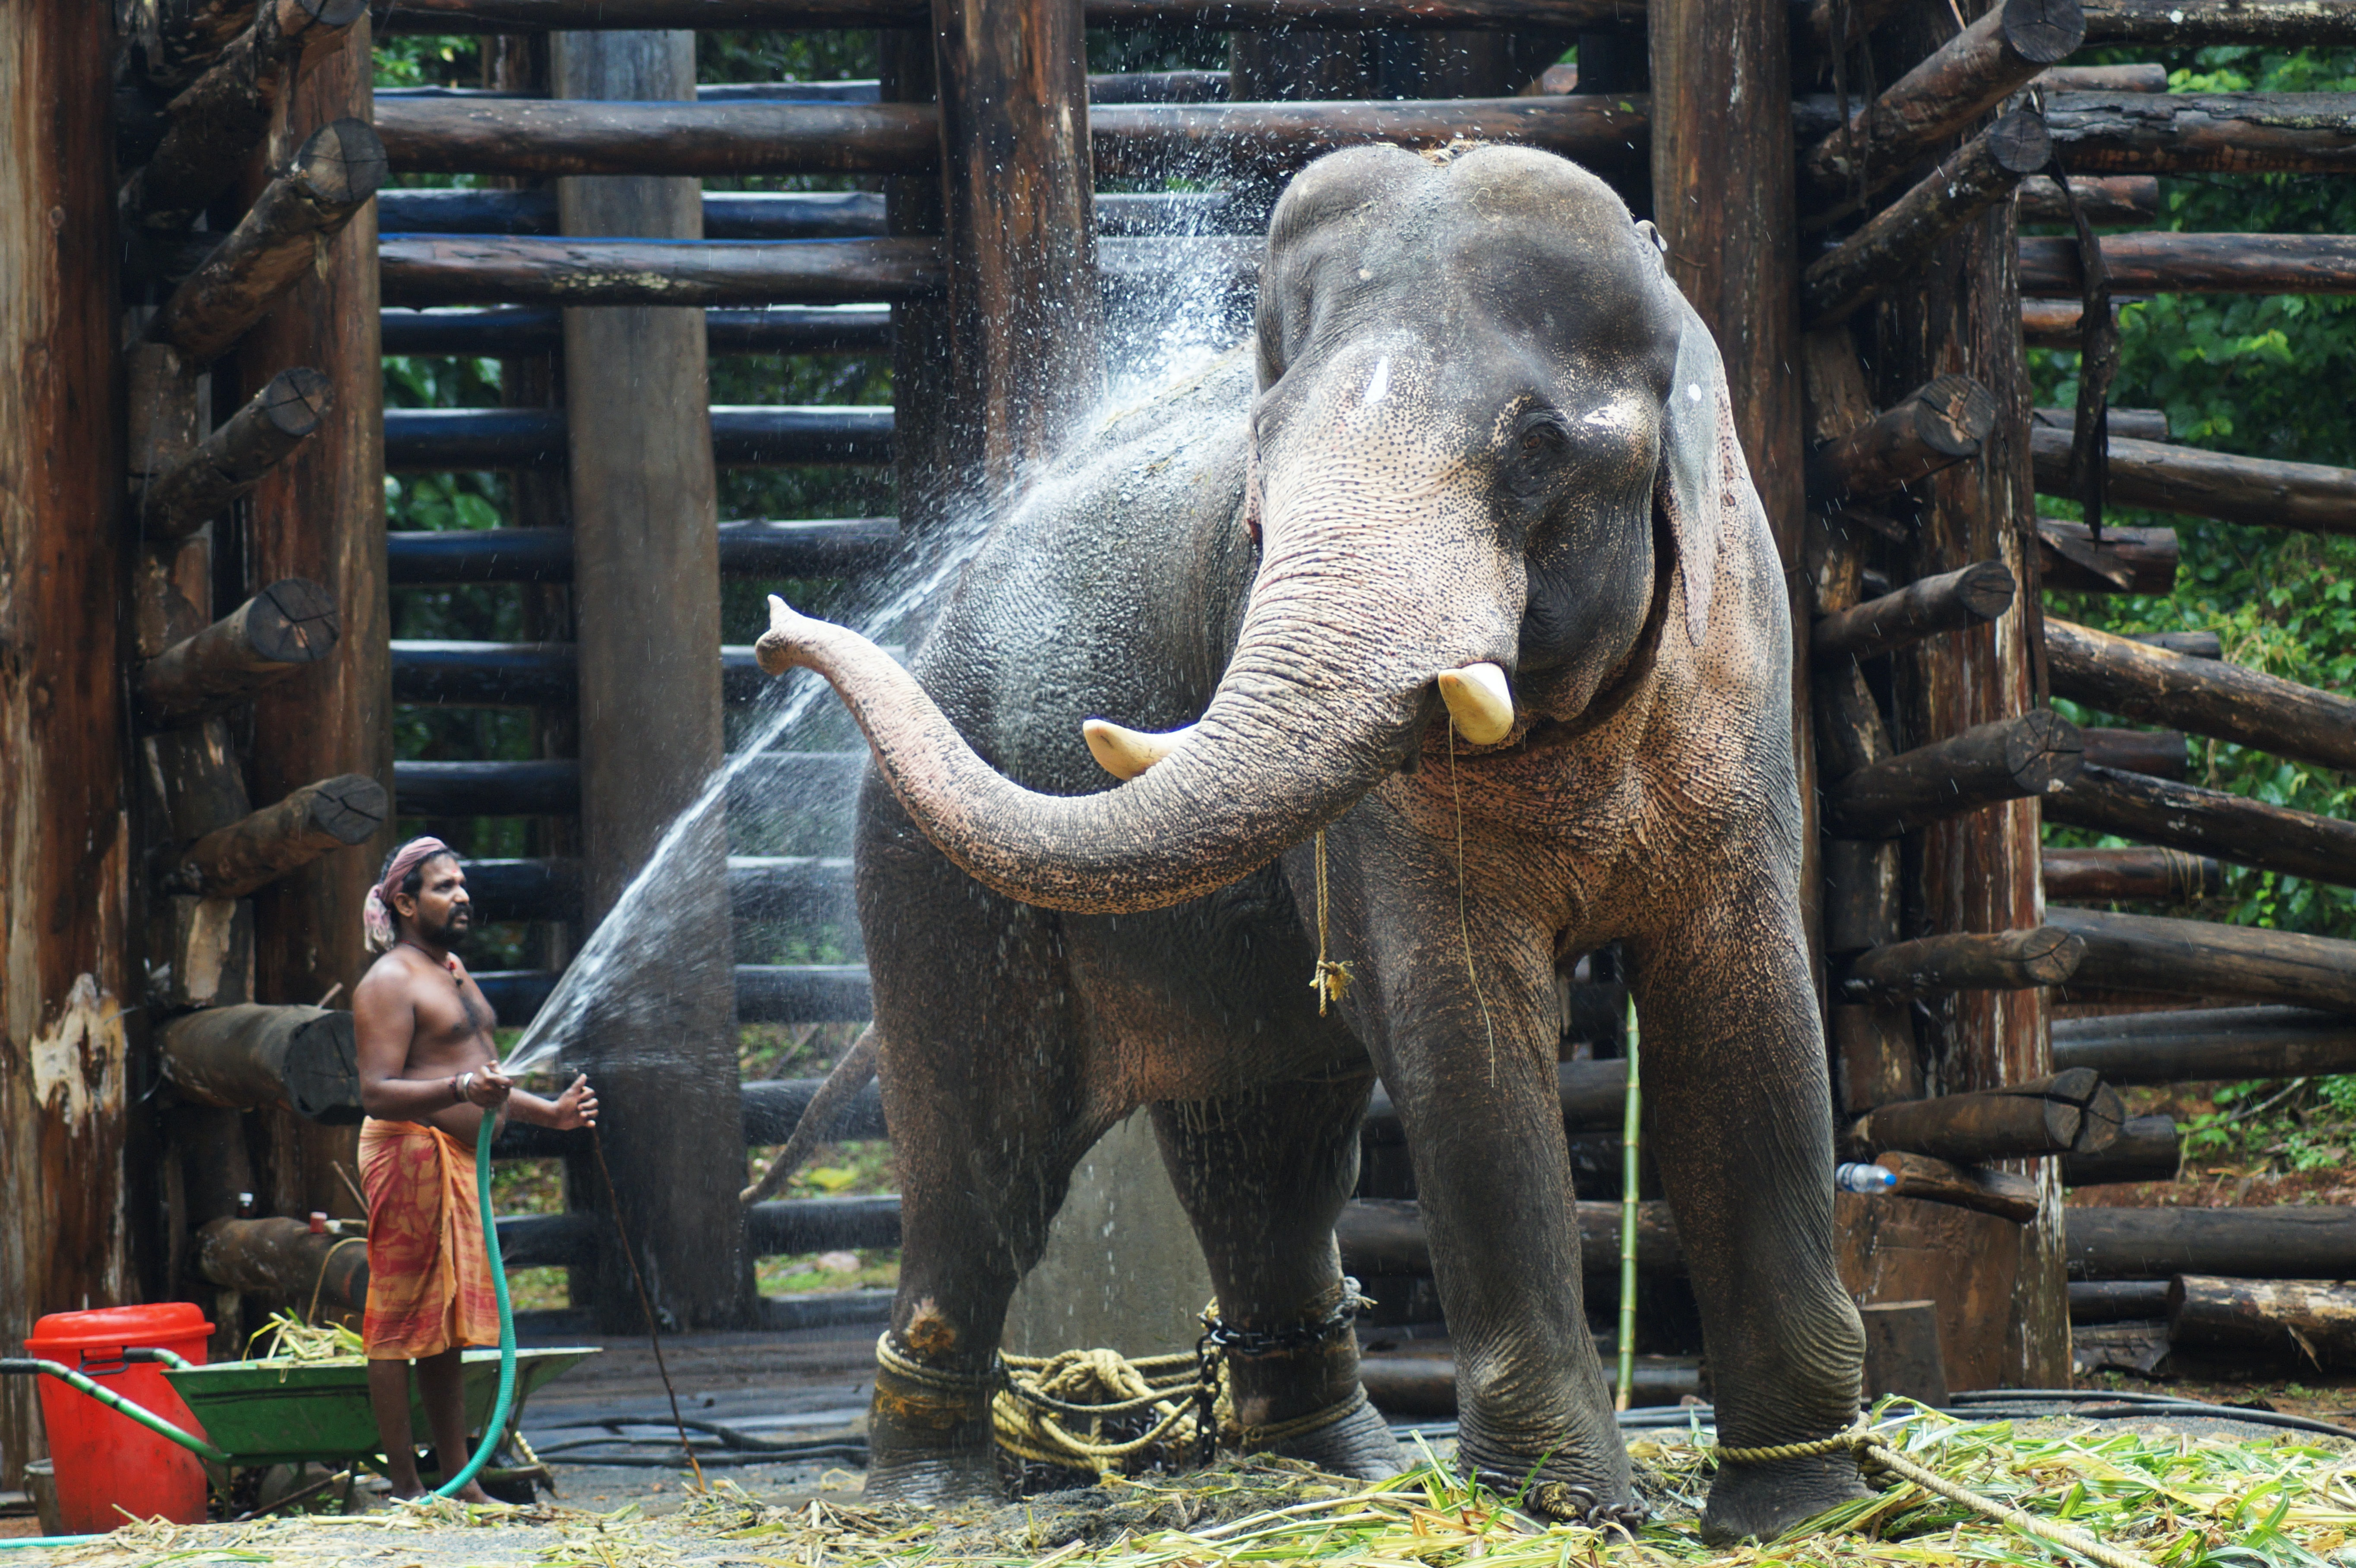 topless holding hose standing beside elephant